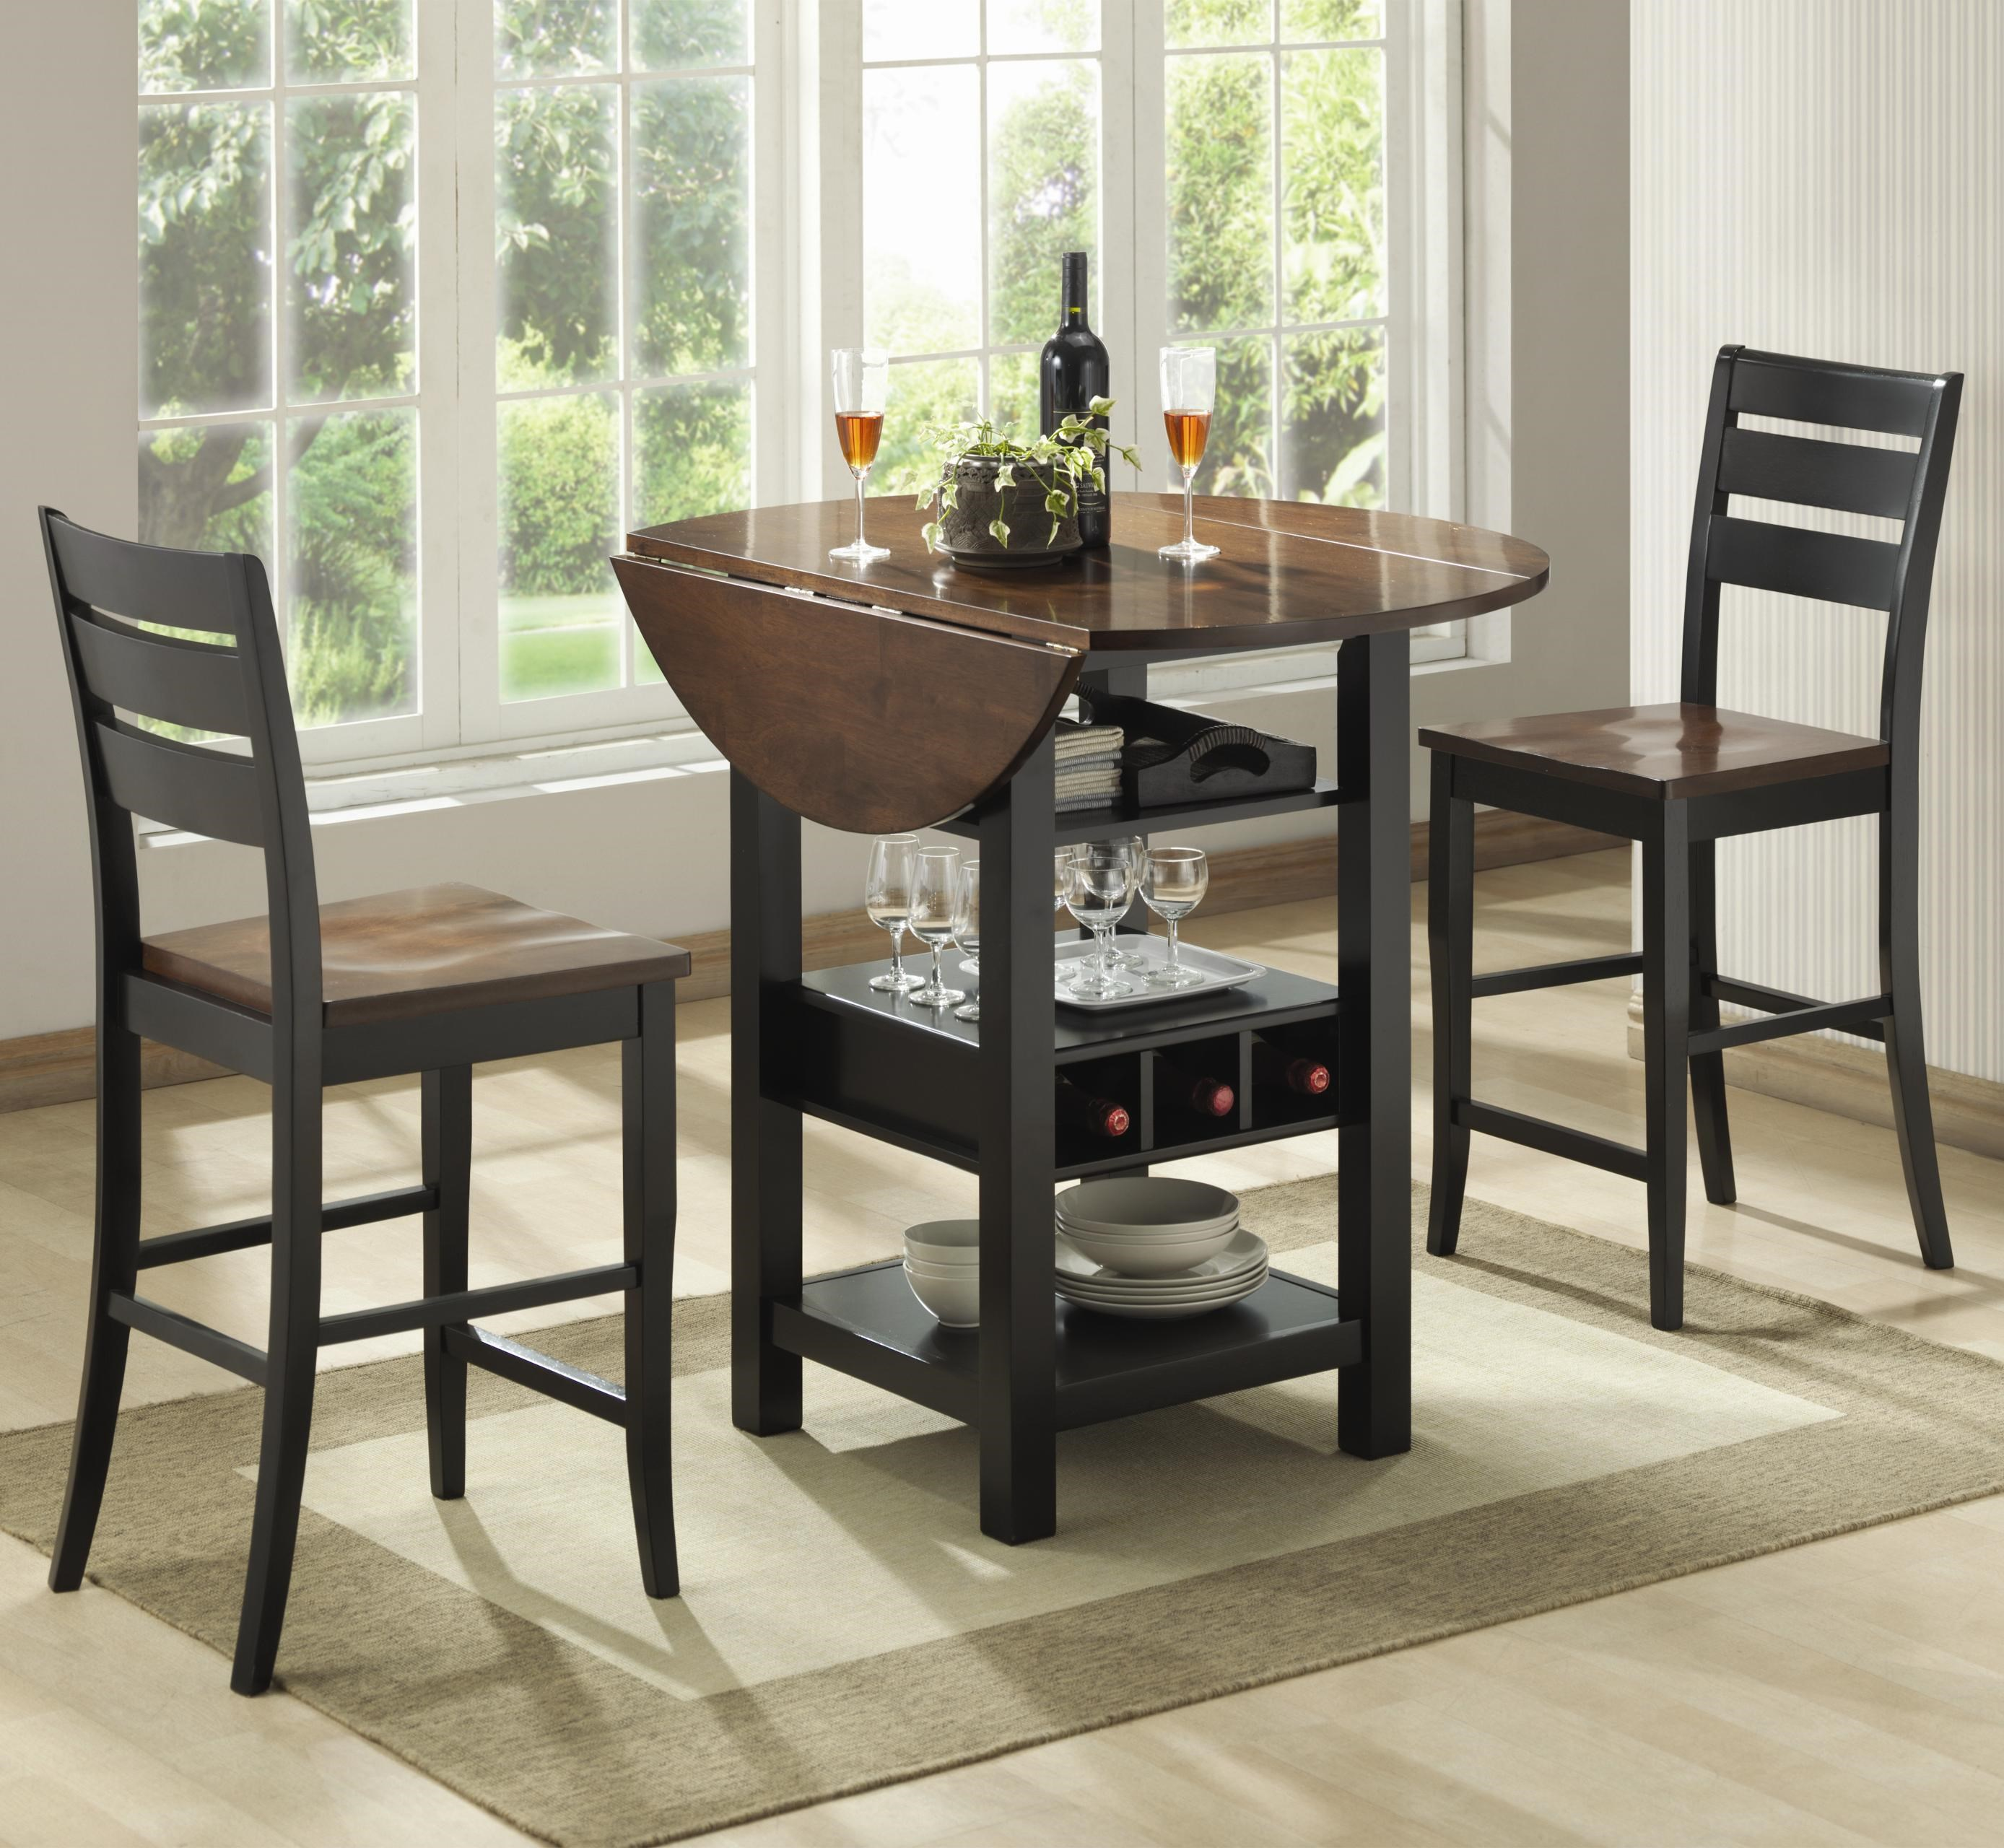 Attractive Bernards Ridgewood 3 Piece Drop Leaf Pub Table Set